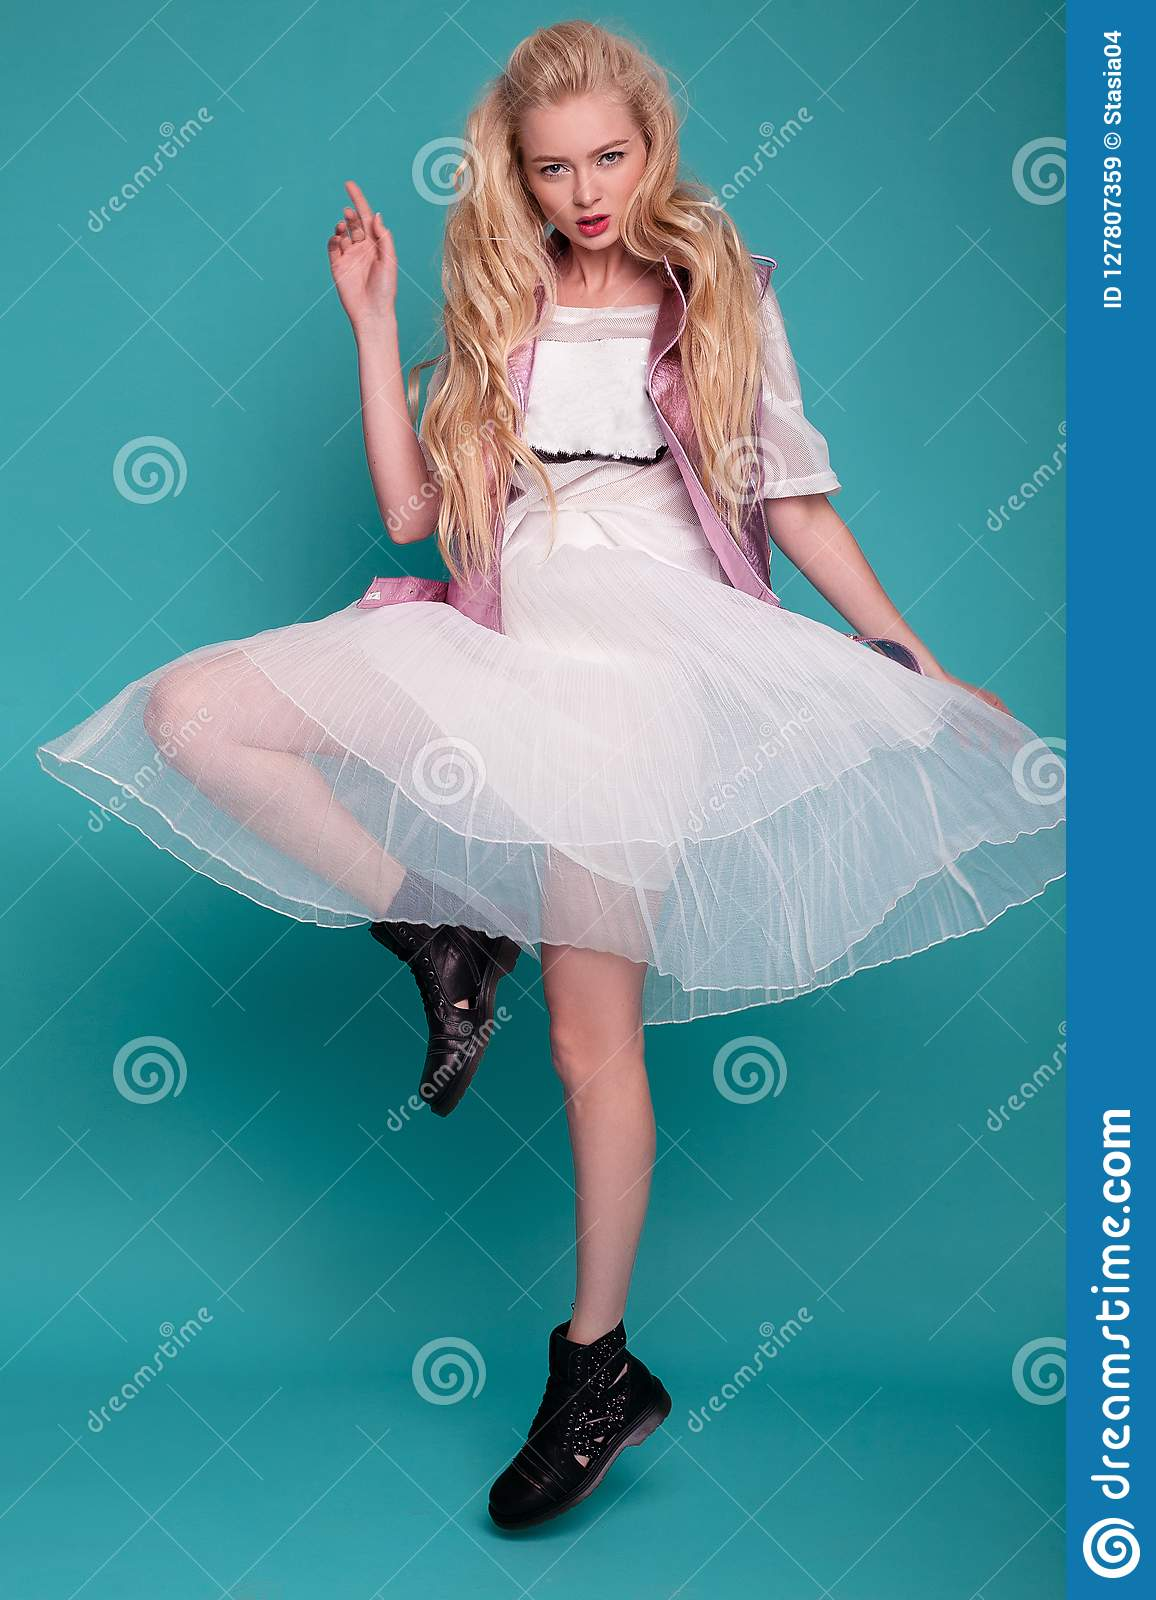 Blonde model in white dress and black boots posing on blue background.